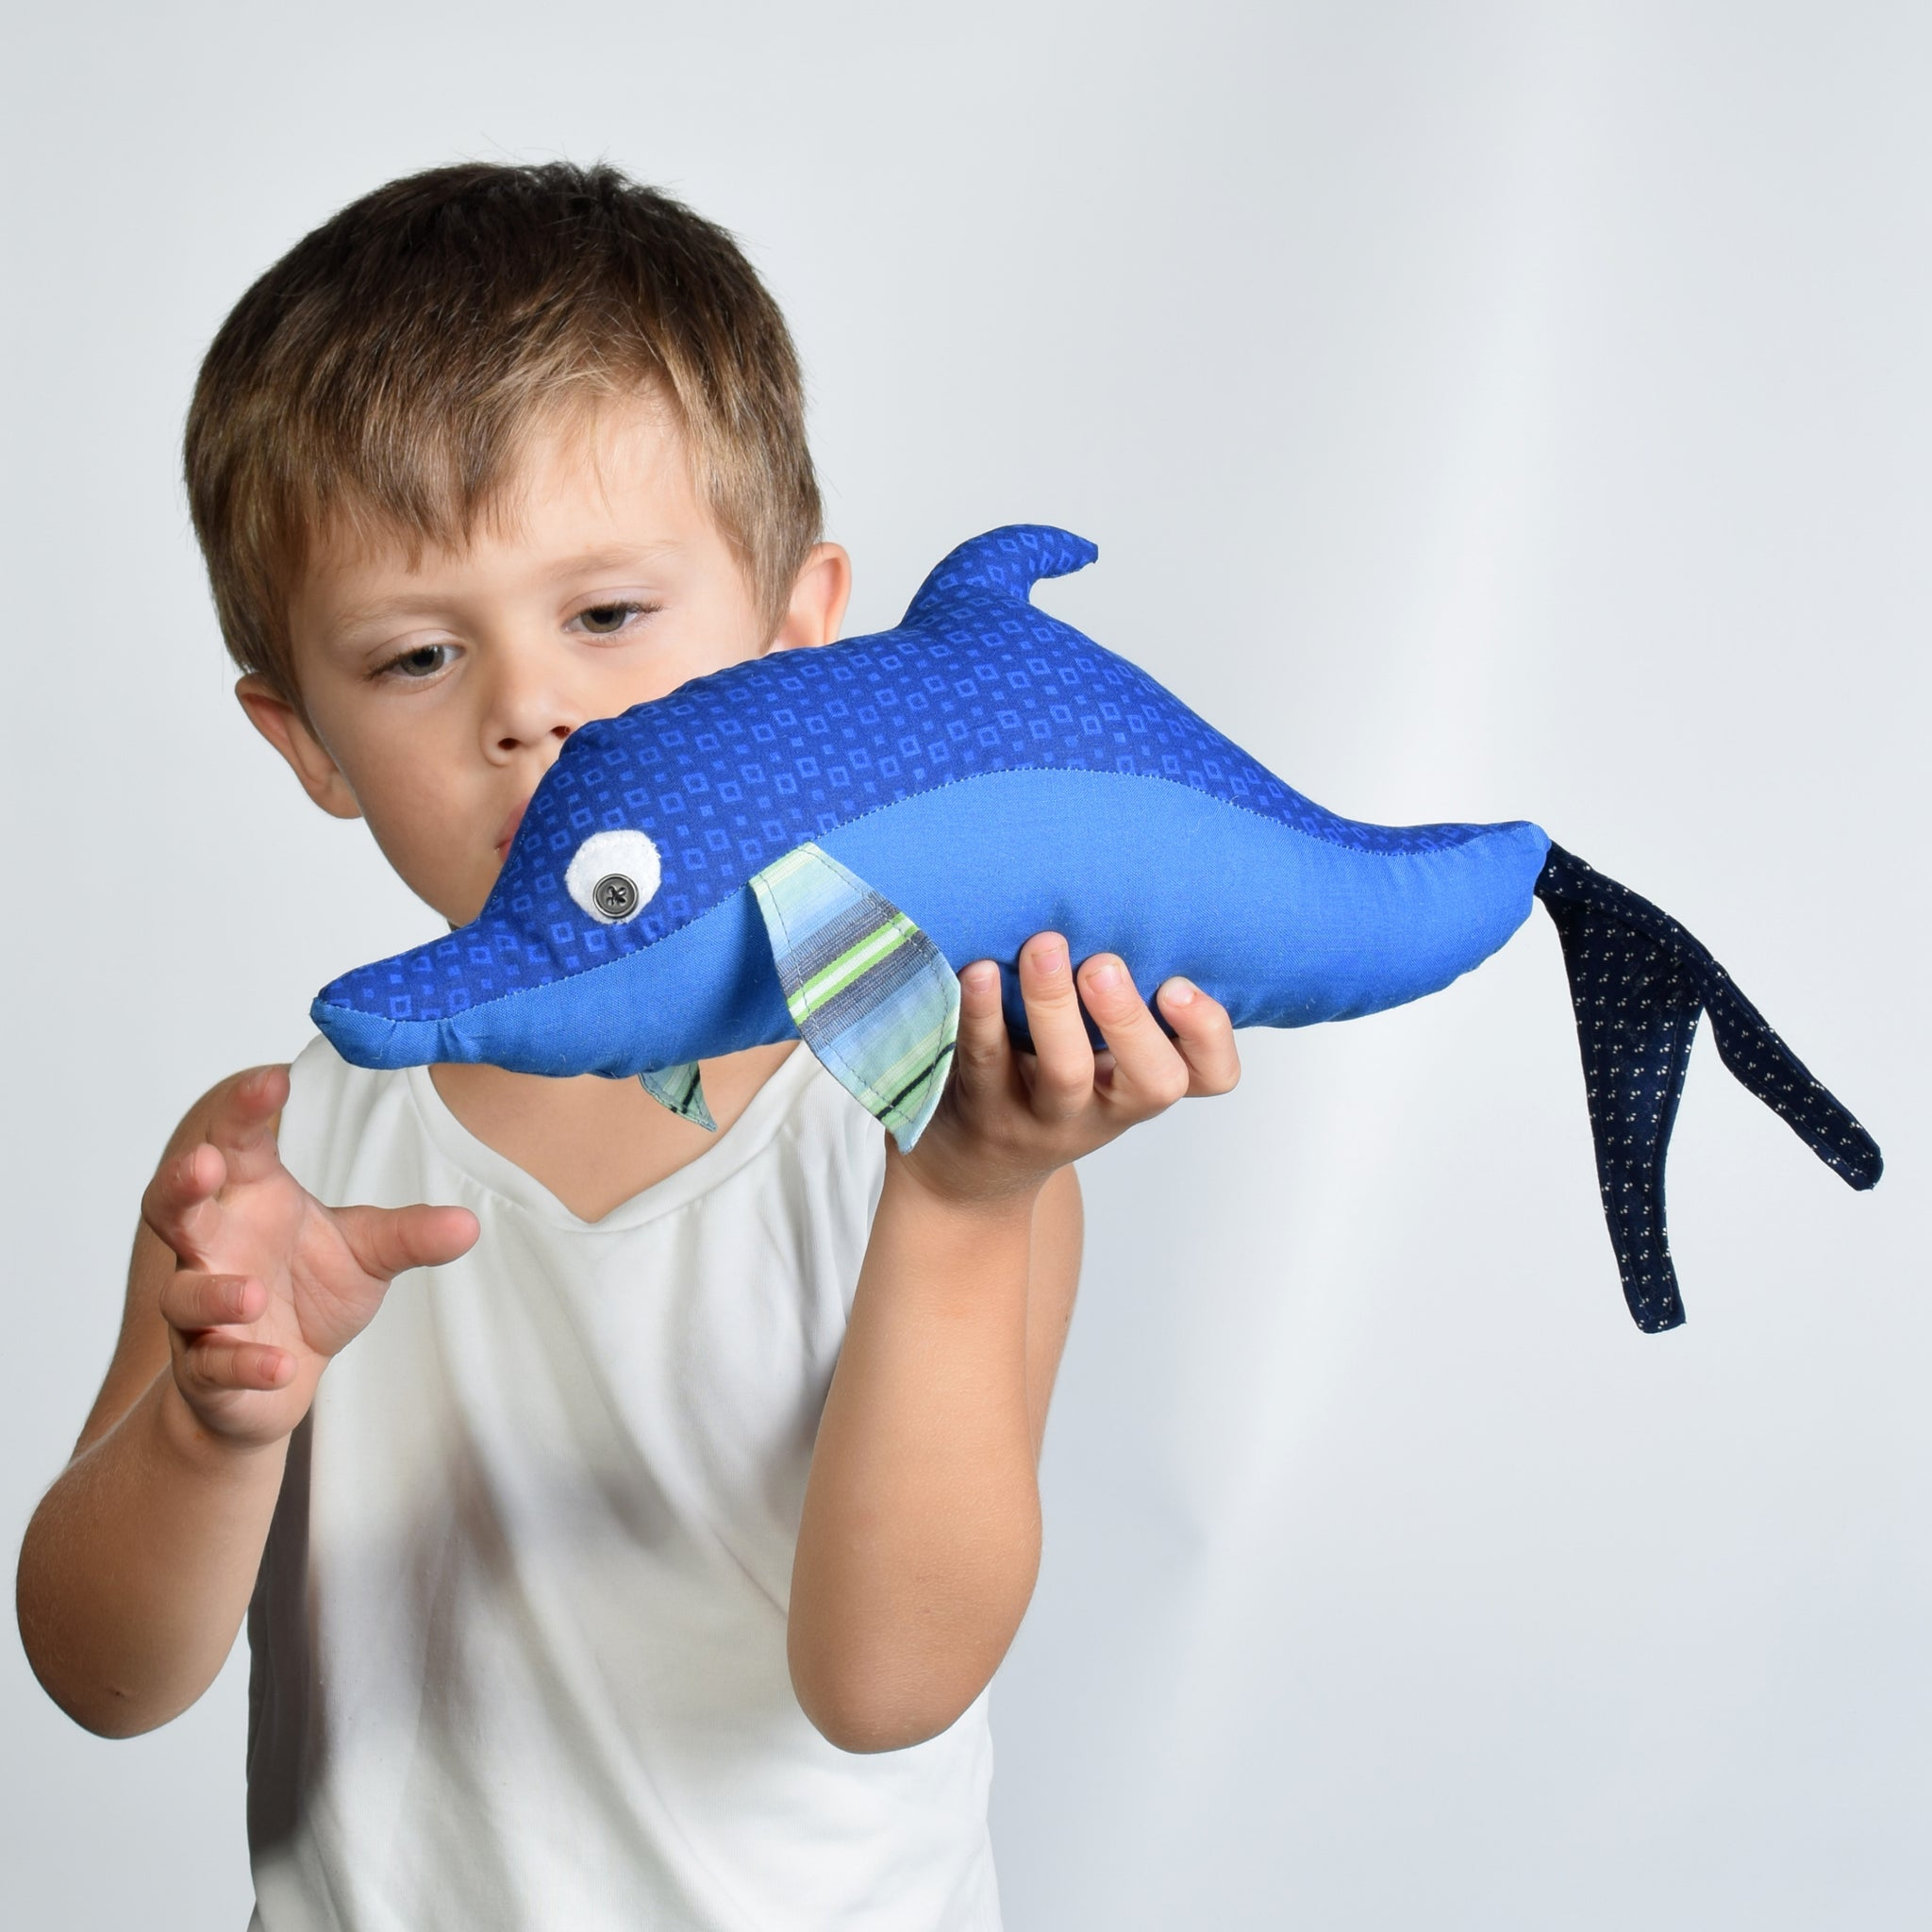 Boy holding dolphin